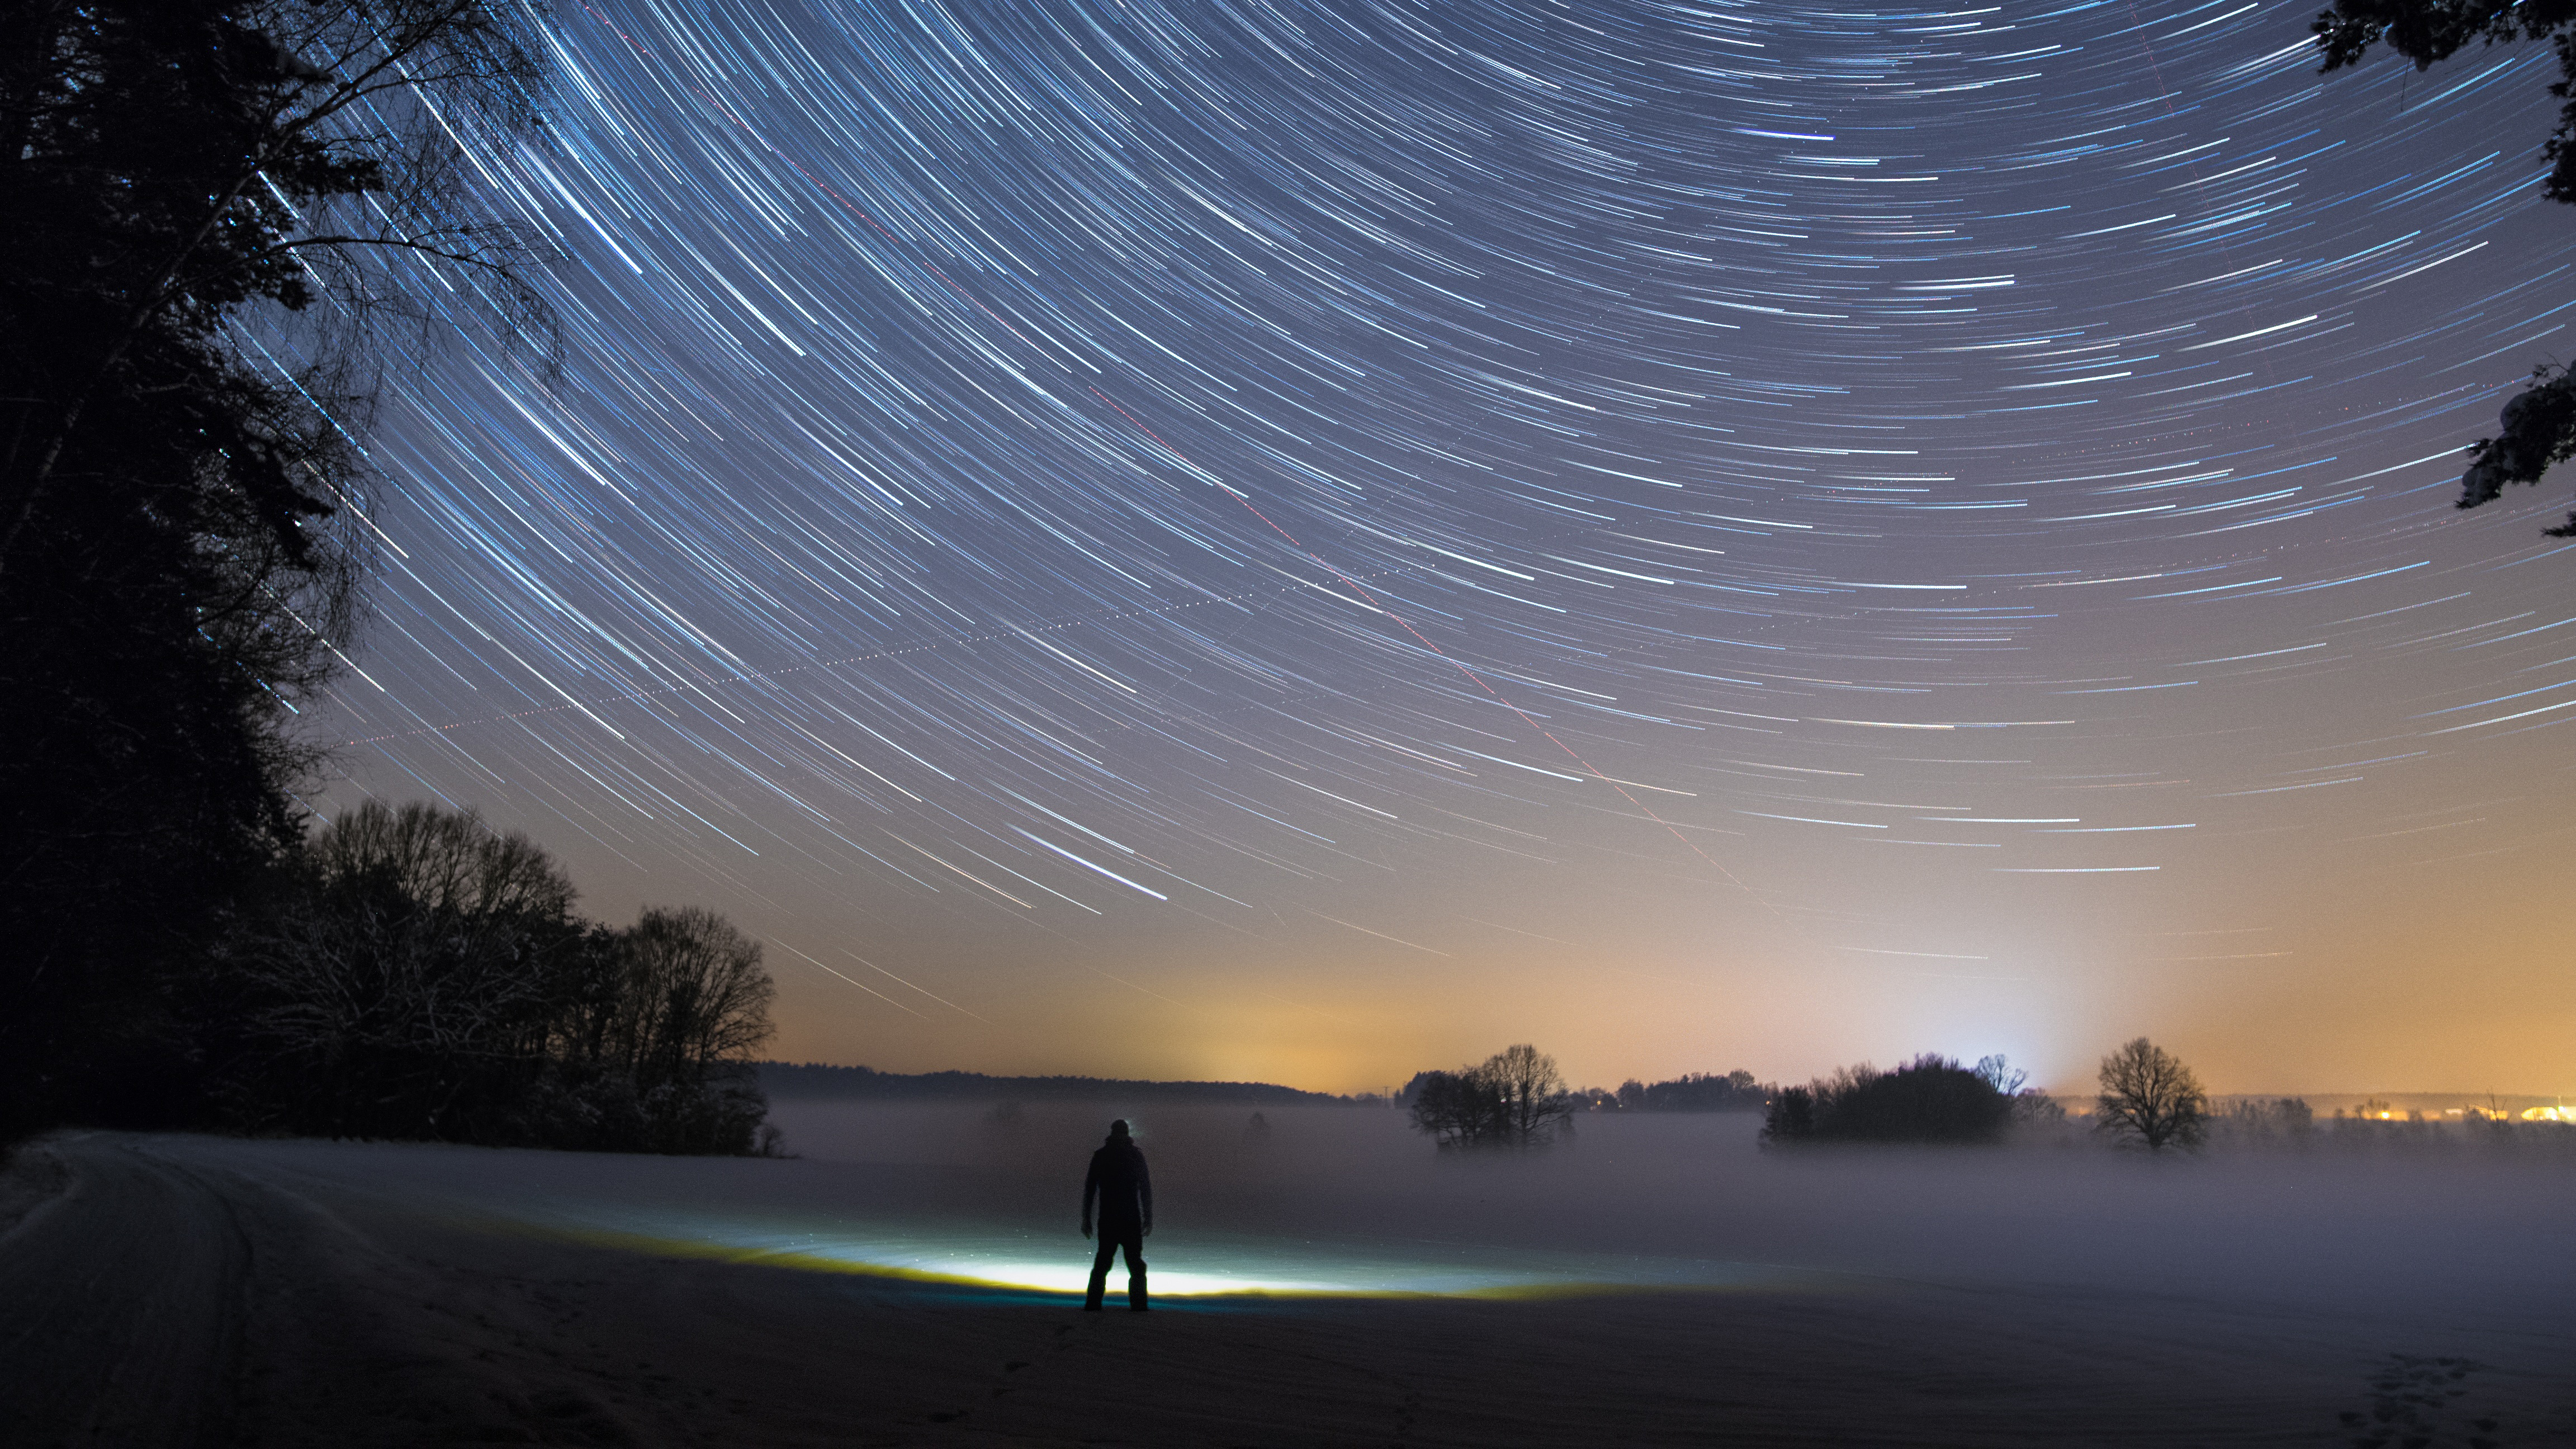 Star Trails Sky 5k Hd Photography 4k Wallpapers Images